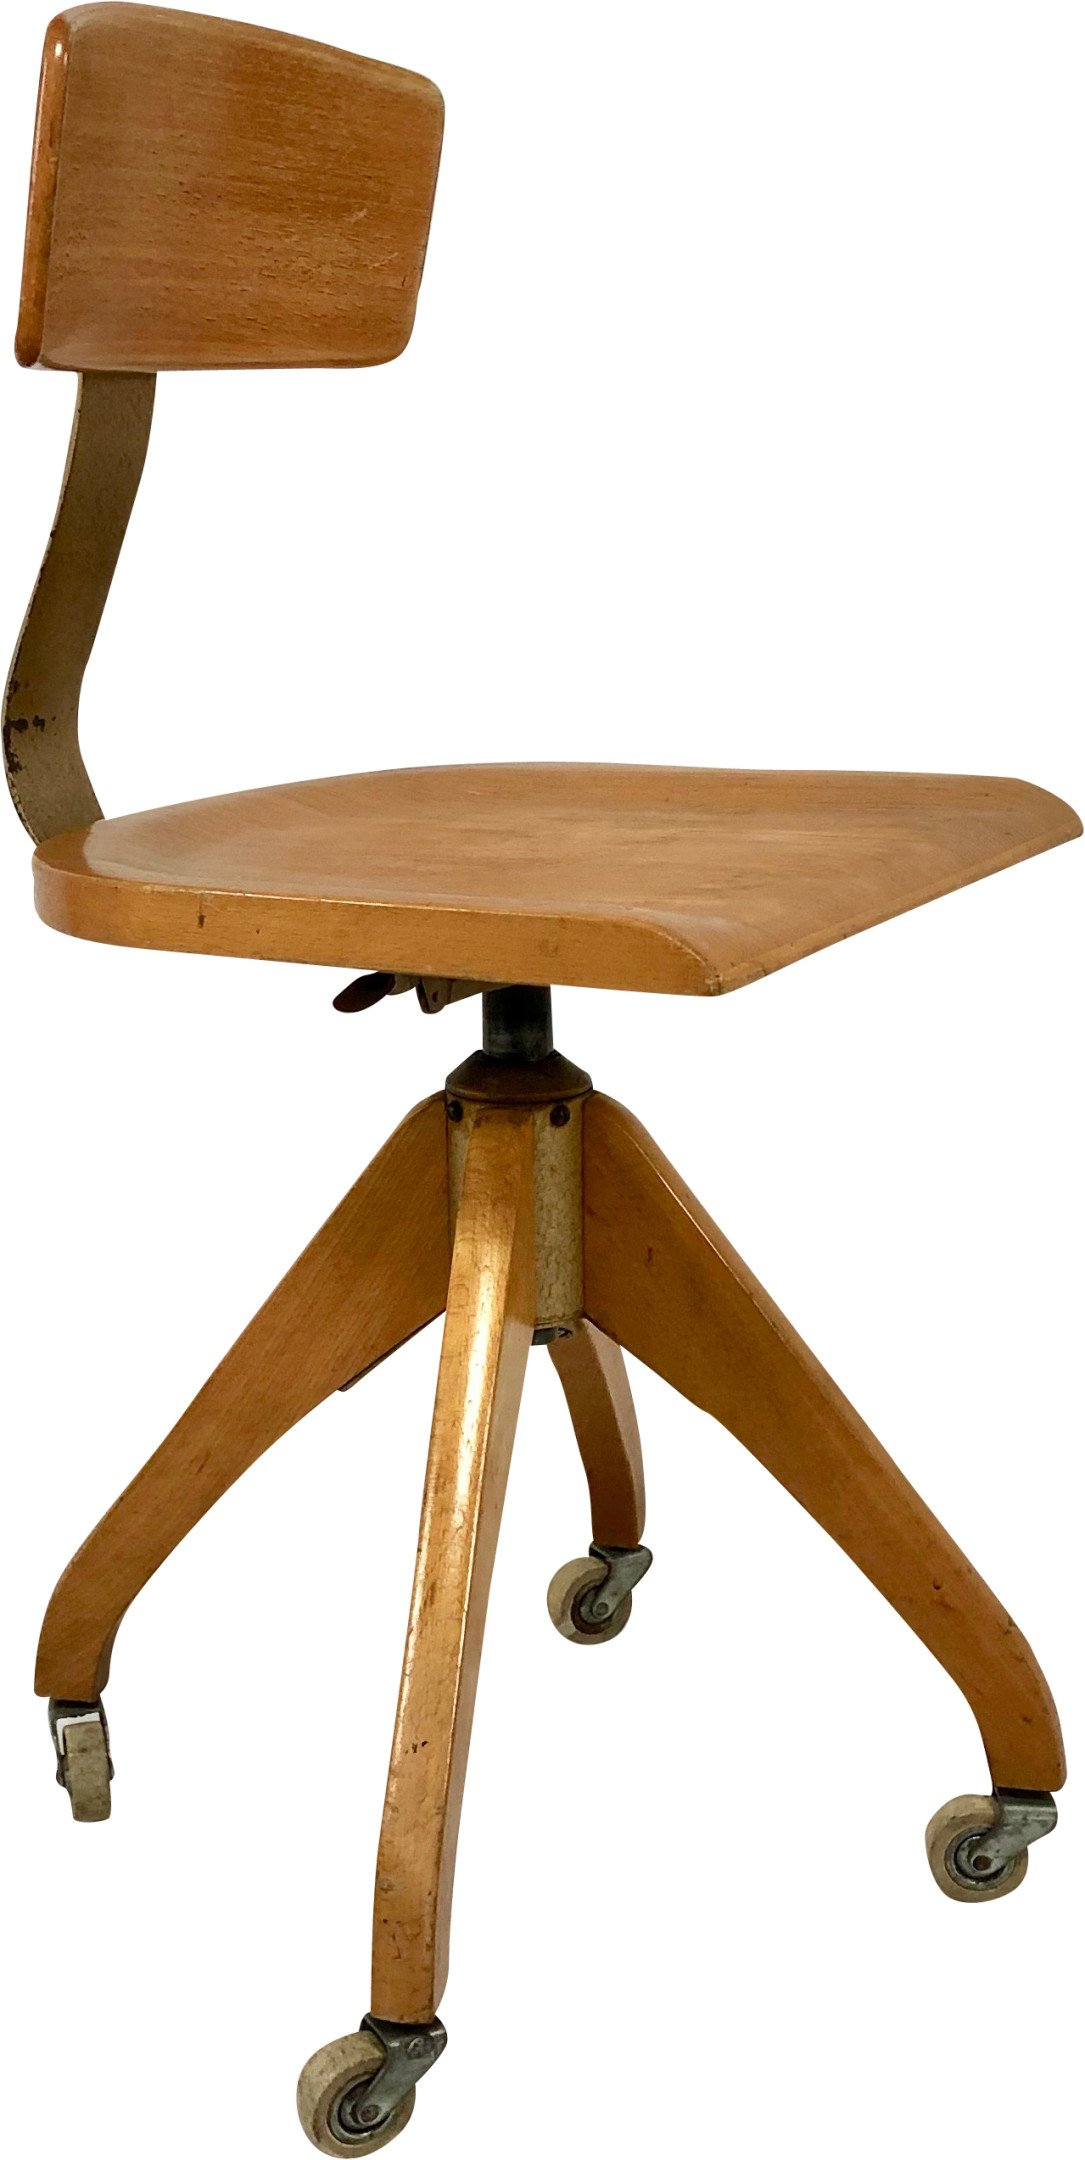 Chair, Ama Elastik, Germany, 1930s